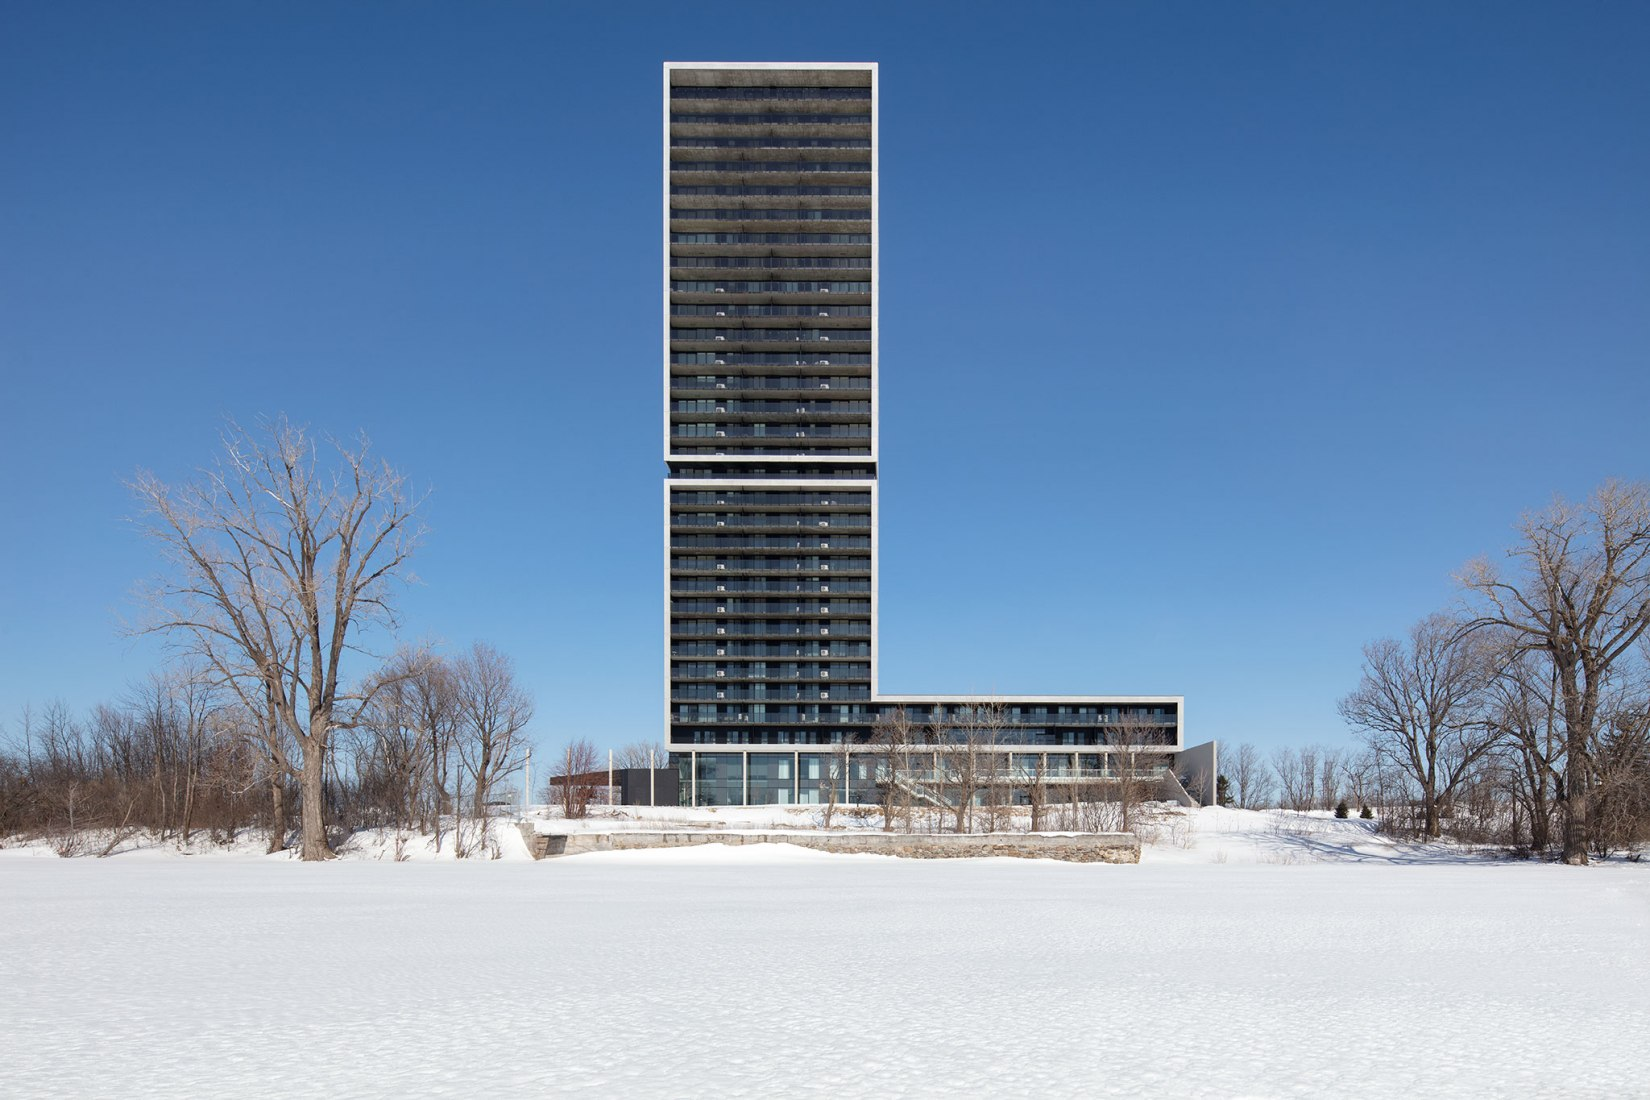 Panorama building by ACDF Architecture. Photograph by Adrien Williams